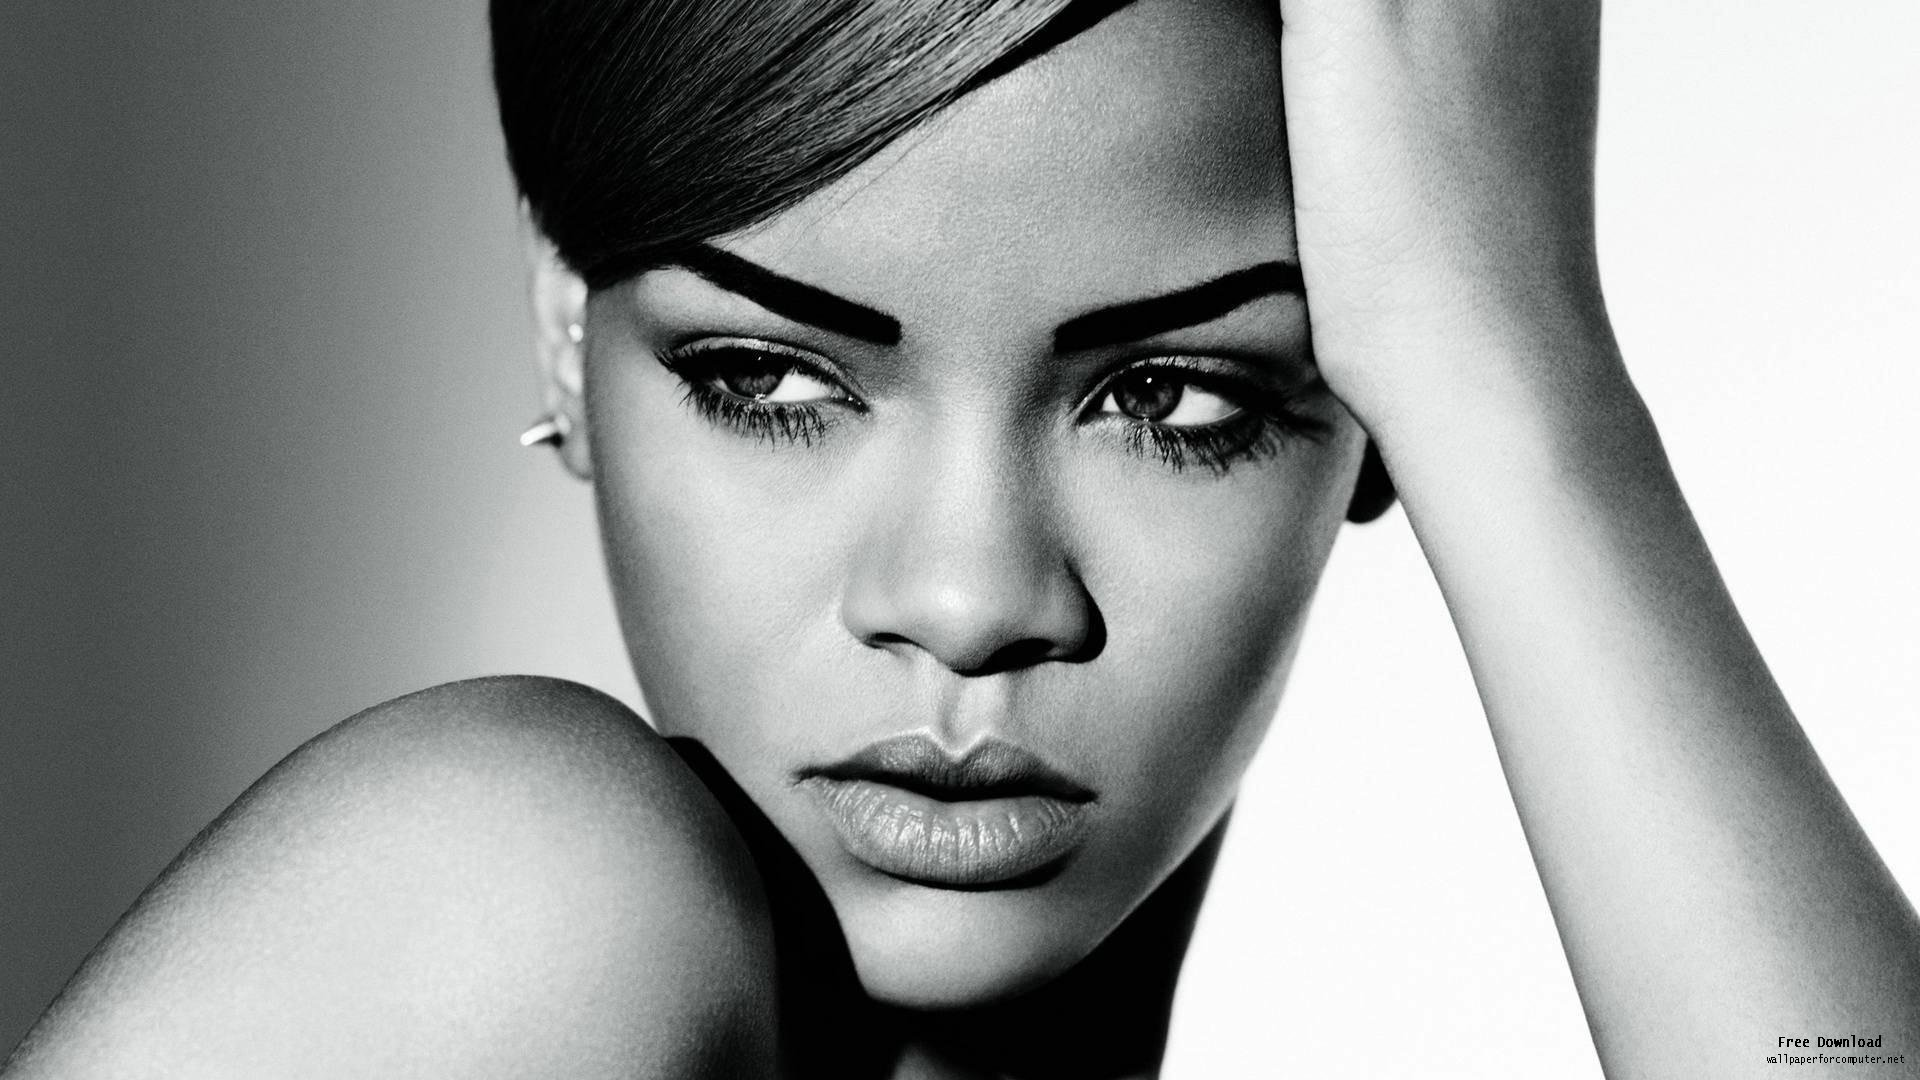 Rihanna Wallpaper HD #6970953